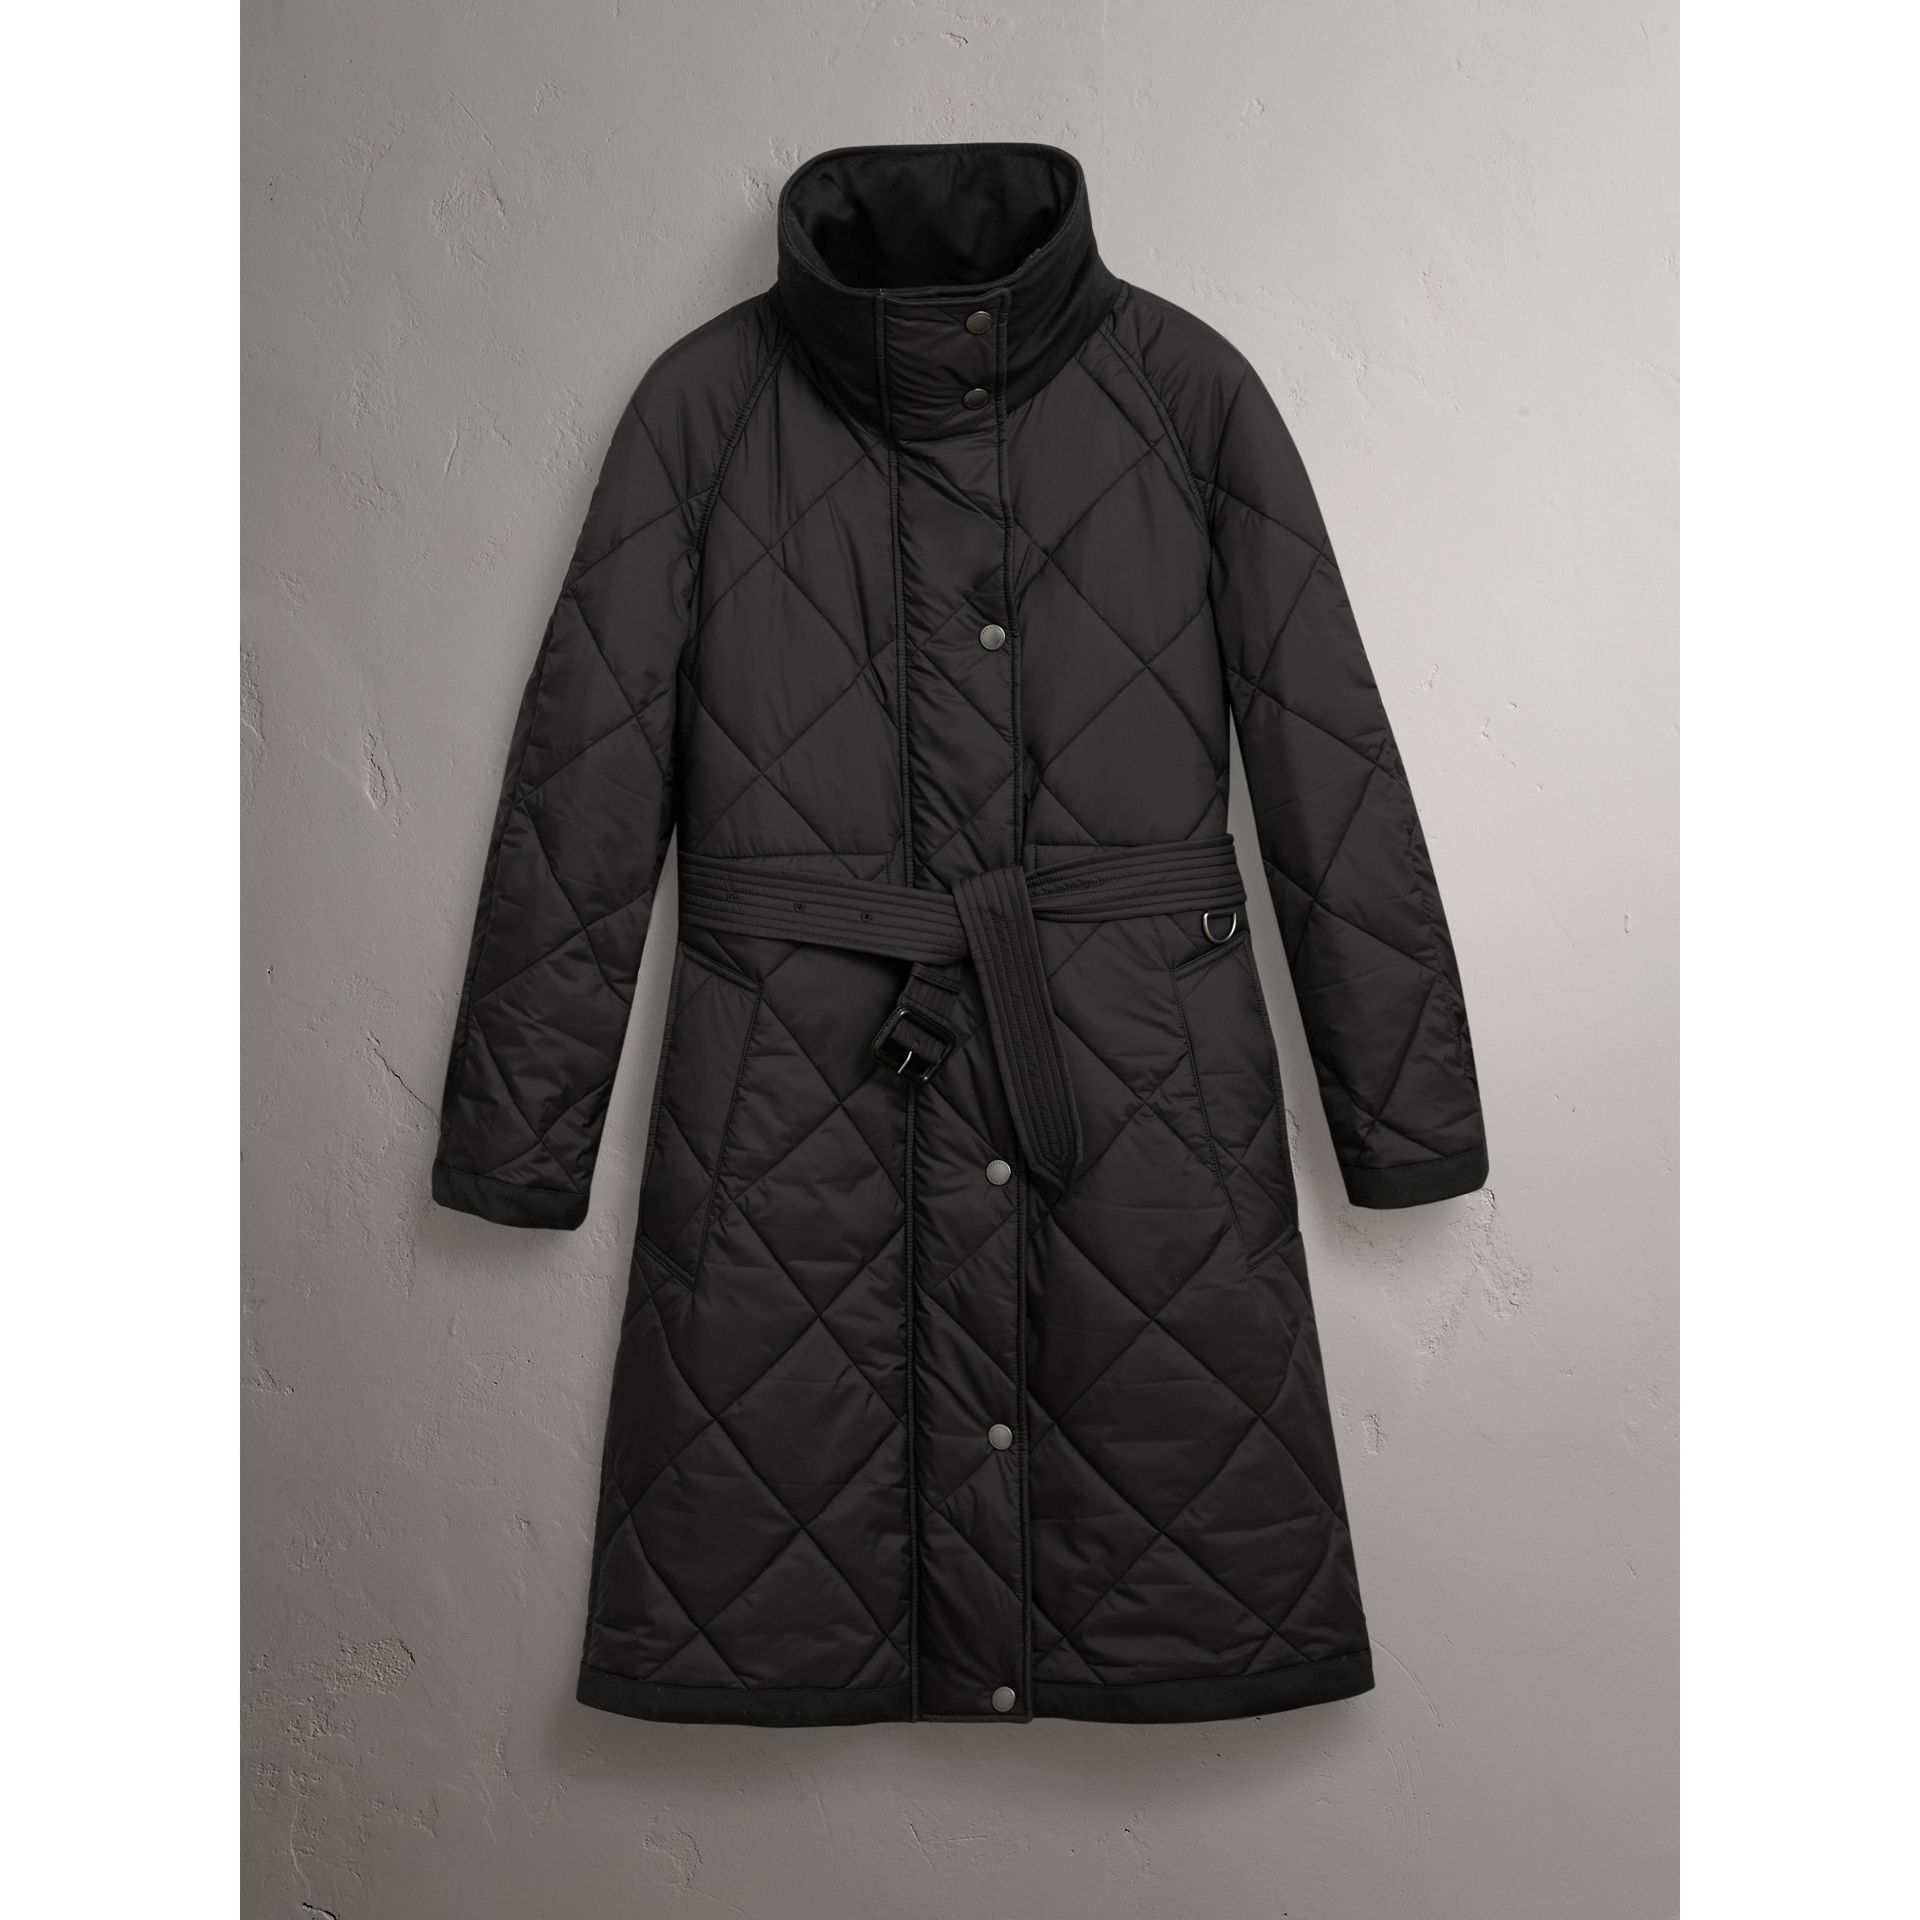 Packaway Hood Diamond Quilted Coat in Black - Women | Burberry Canada - gallery image 3